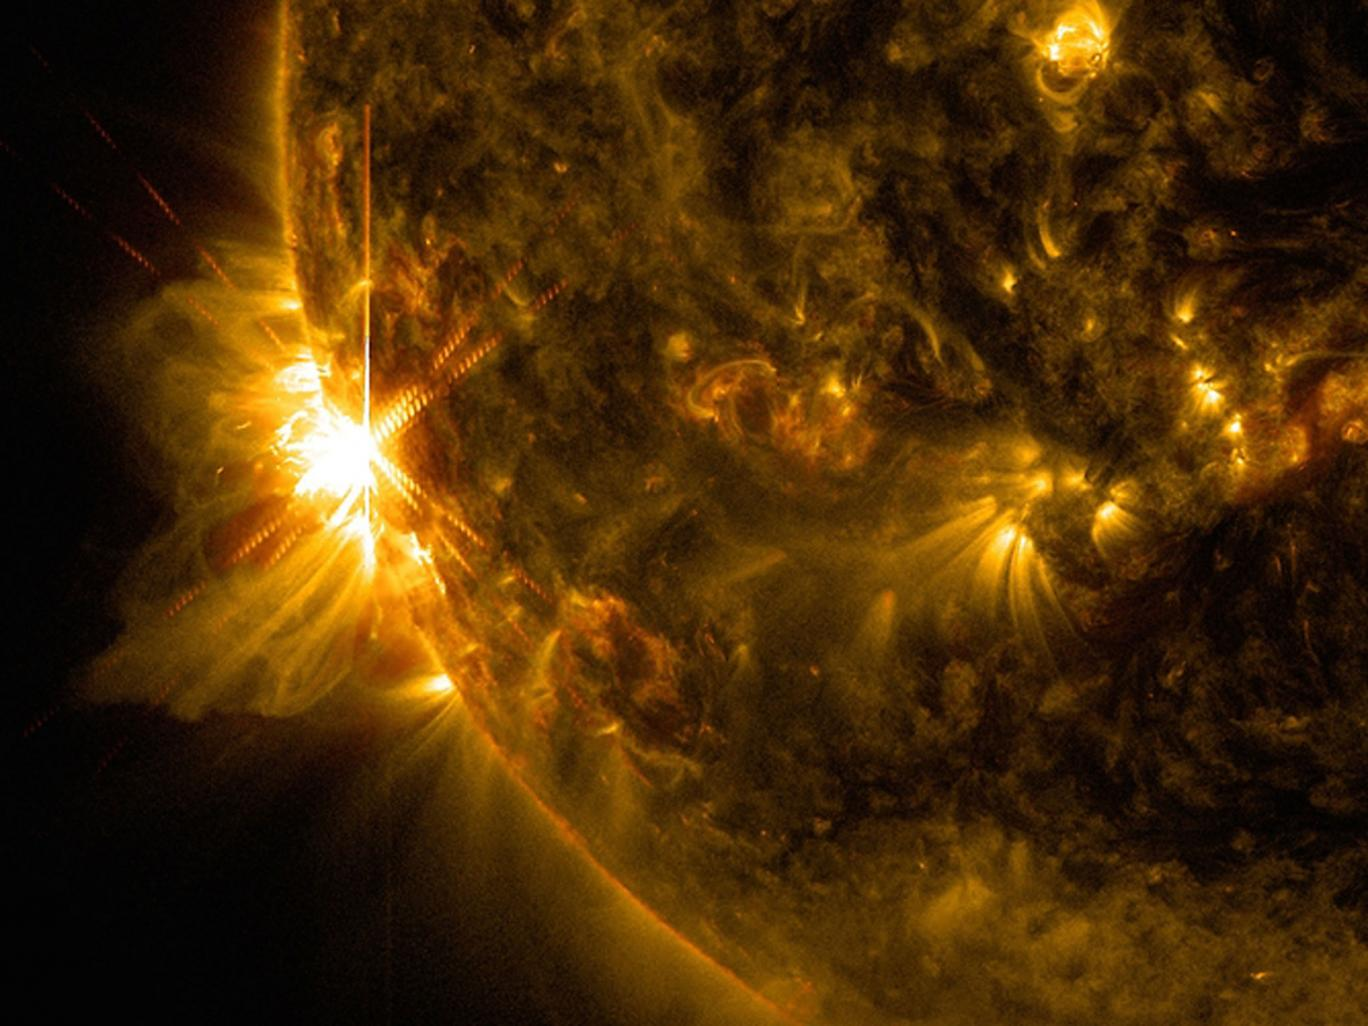 Solar storm scientists prepare for geomagnetic event that could destroy technology across the world for years